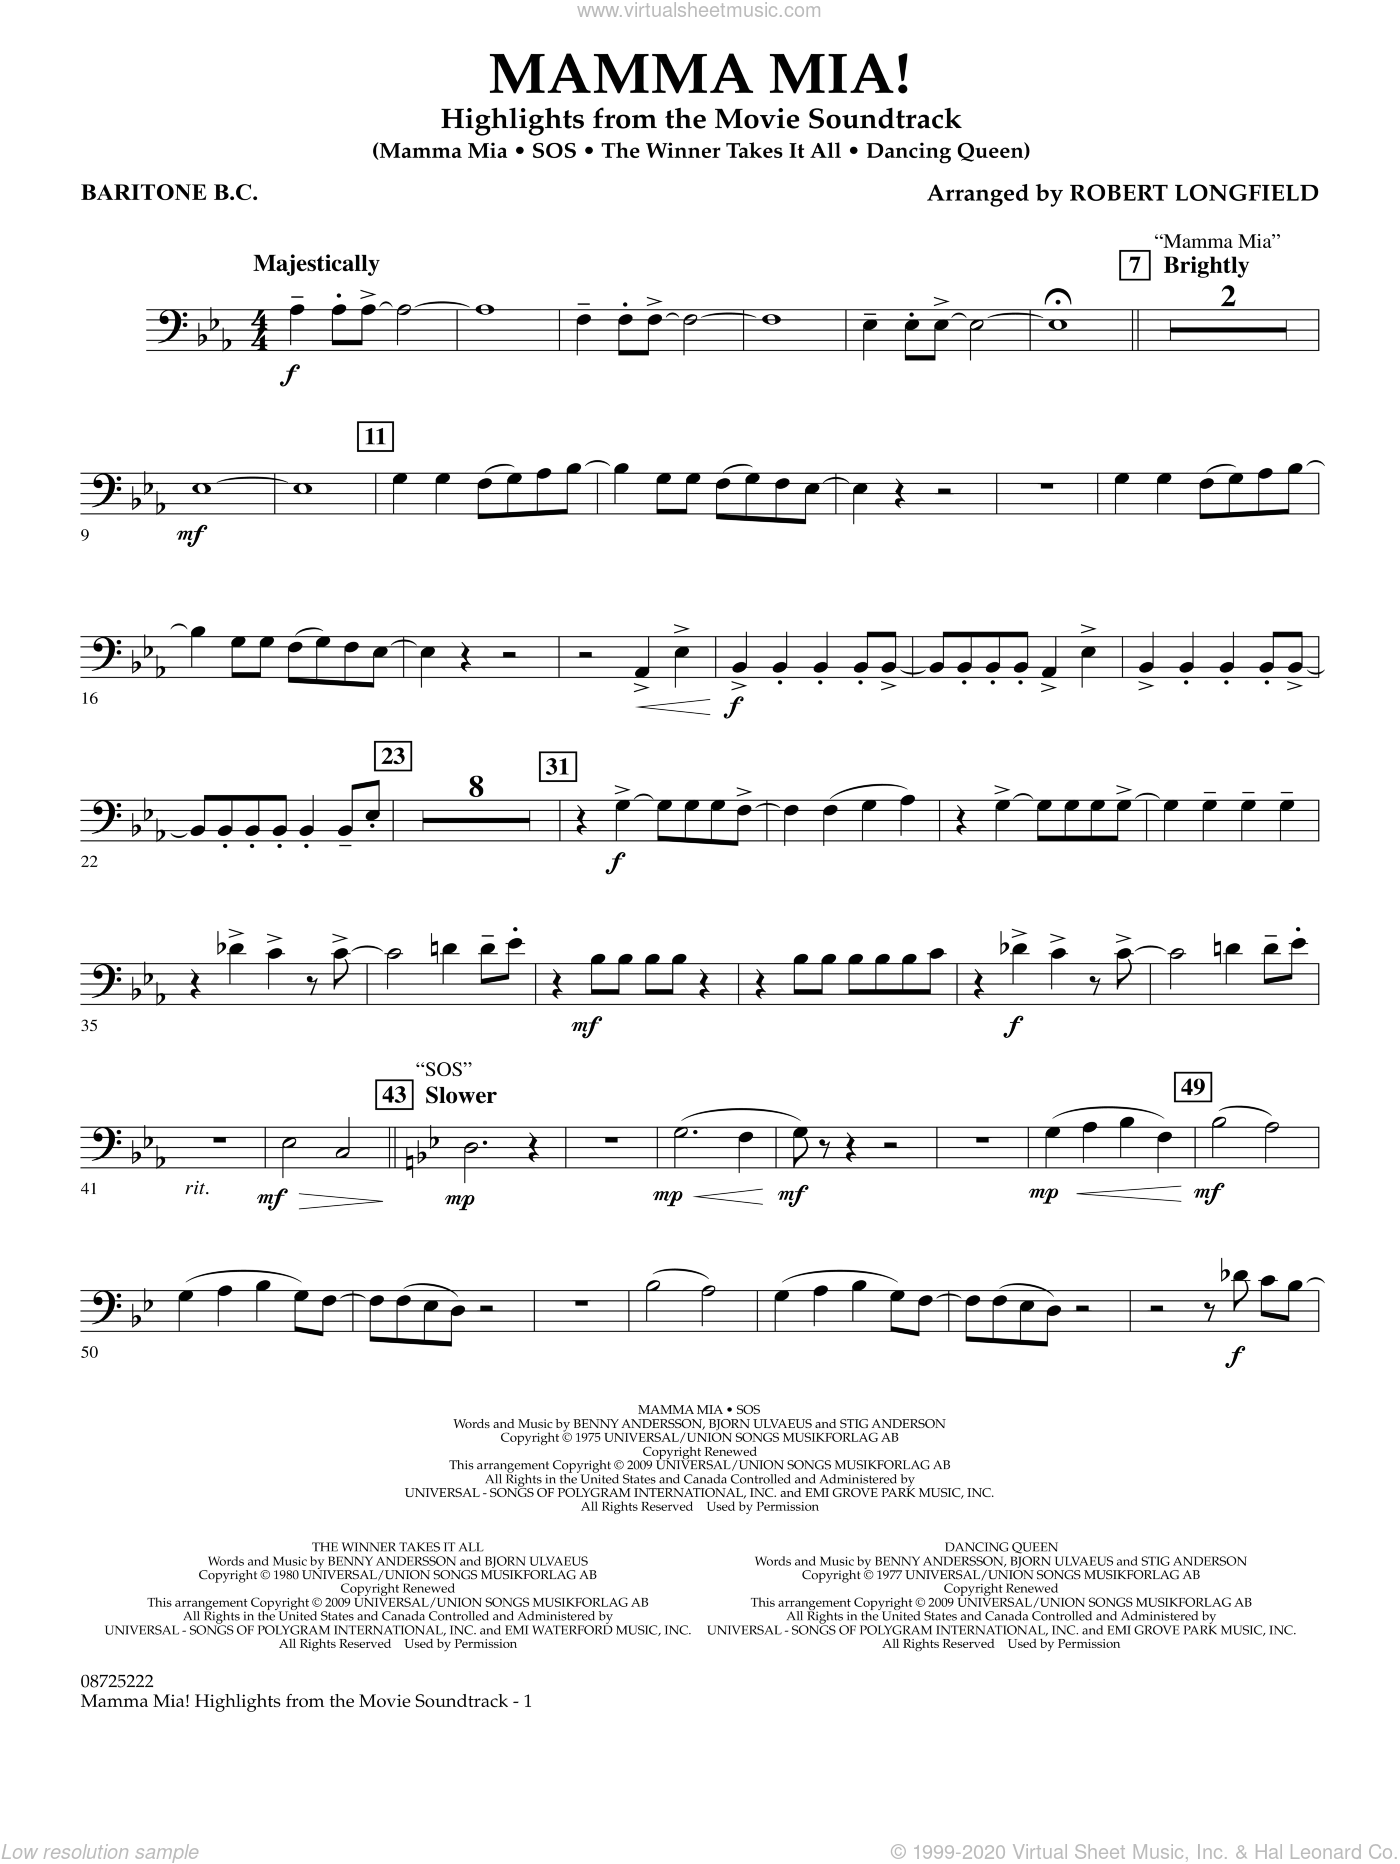 Mamma Mia!, highlights from the movie soundtrack sheet music for concert band (baritone b.c.) by Robert Longfield